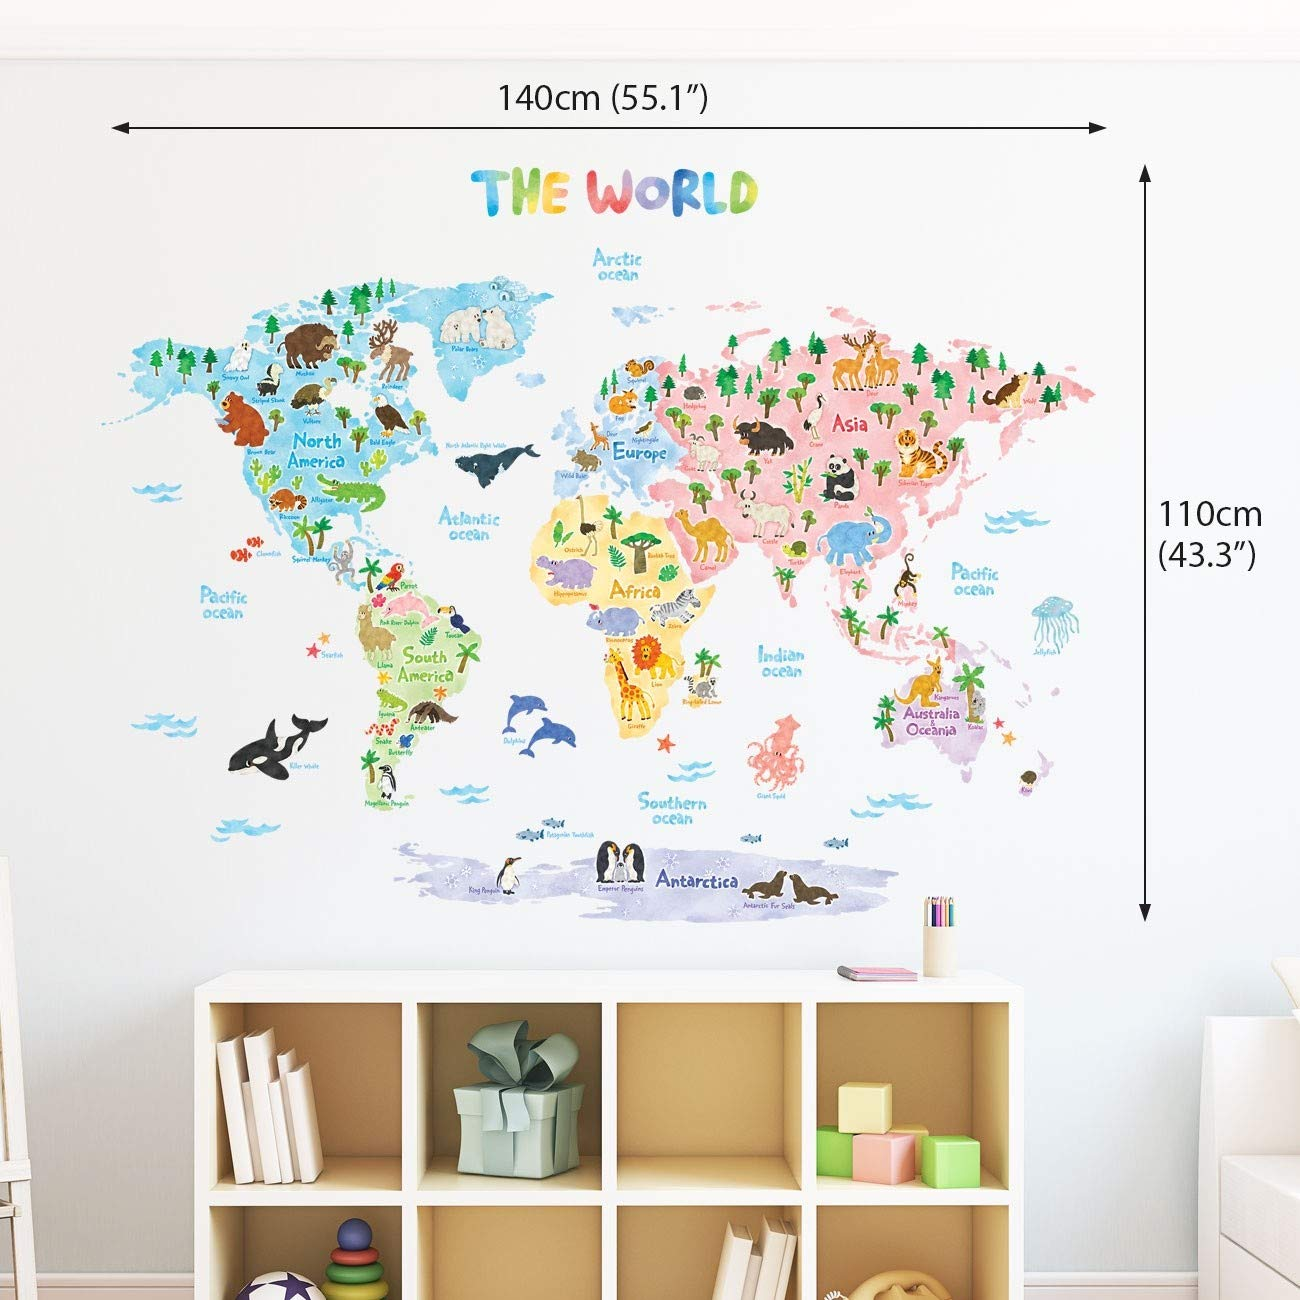 Decowall DLT-1615 Animal World Map Kids Wall Decals Wall Stickers Peel and Stick Removable Wall Stickers for Kids Nursery Bedroom Living Room (XLarge) by Decowall (Image #3)